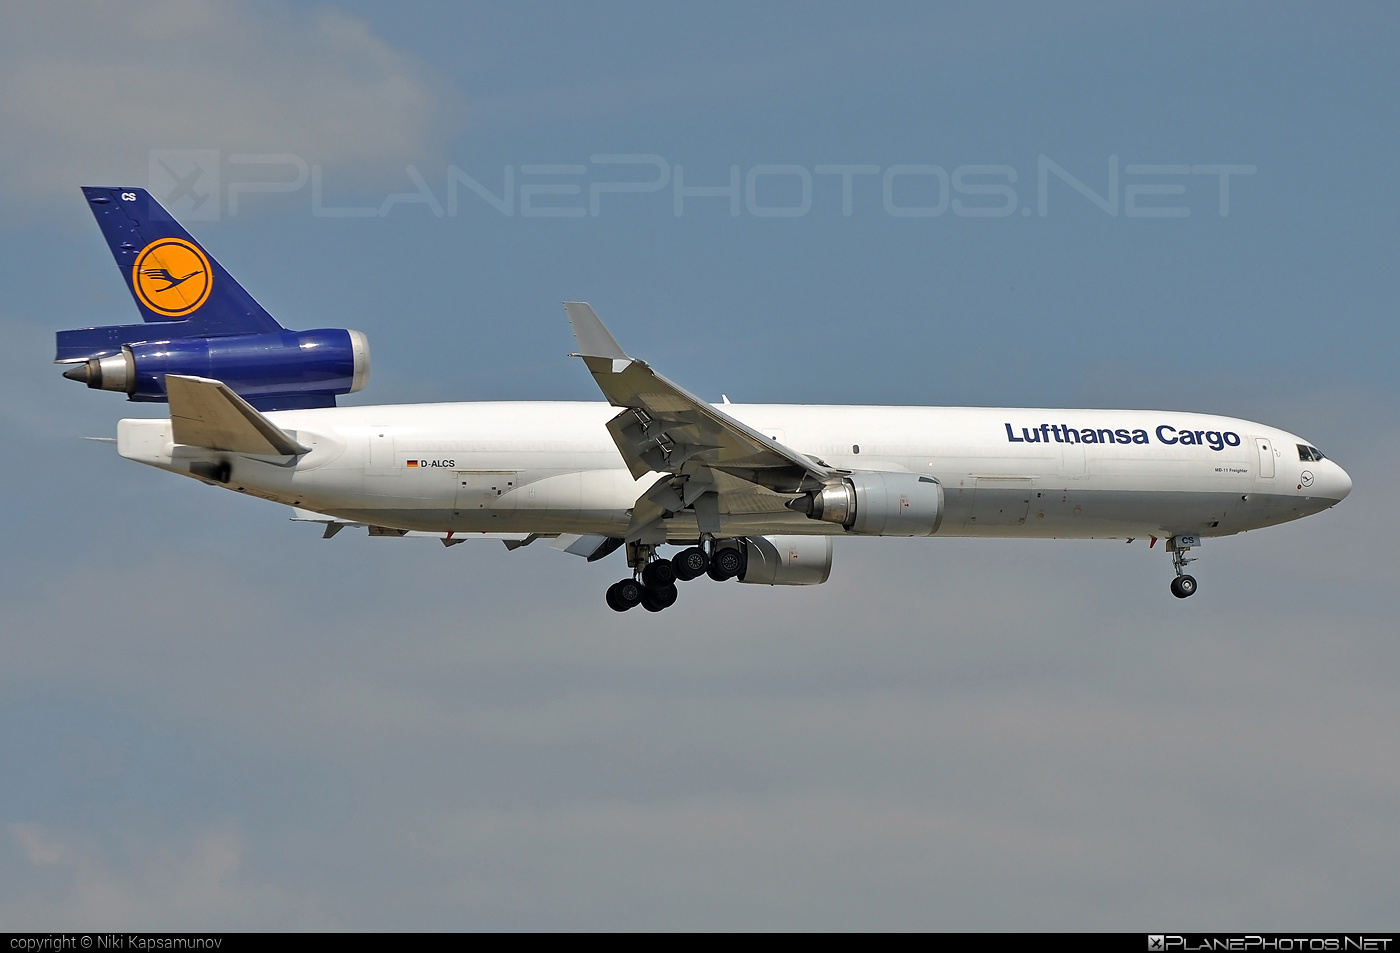 McDonnell Douglas MD-11F - D-ALCS operated by Lufthansa Cargo #lufthansa #lufthansacargo #mcdonnelldouglas #mcdonnelldouglas11 #mcdonnelldouglas11f #mcdonnelldouglasmd11 #mcdonnelldouglasmd11f #md11 #md11f